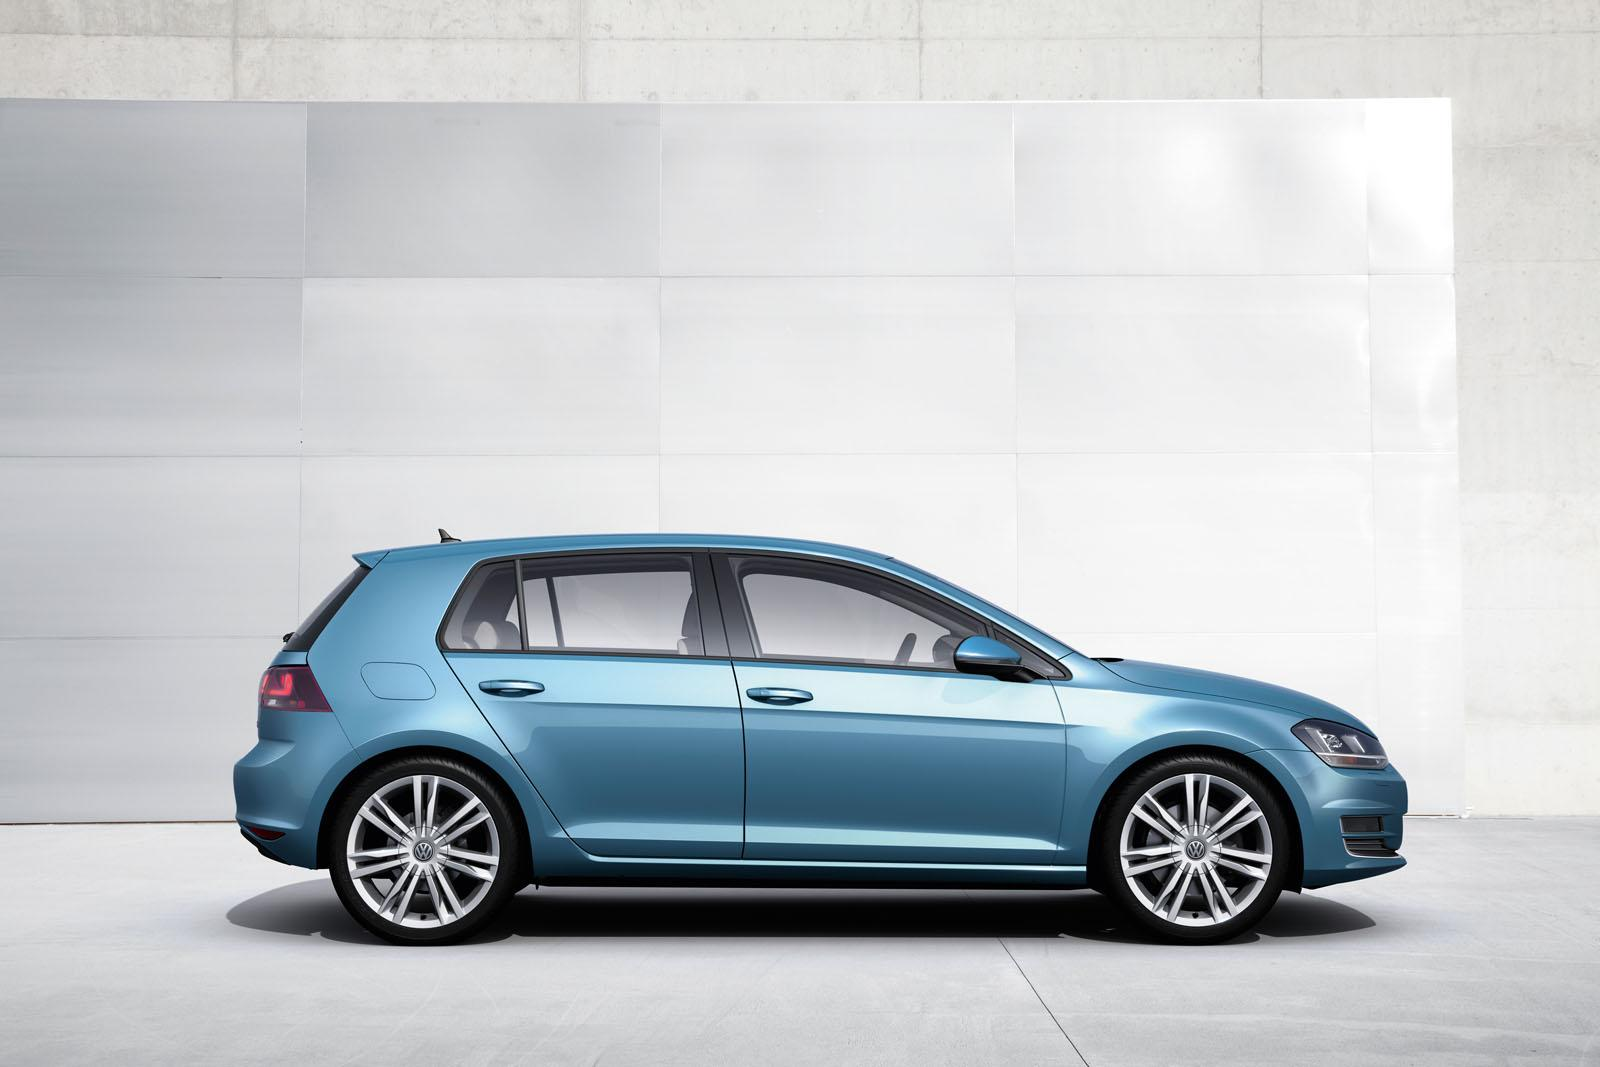 Volkswagen Golf Vii Official Specs And Images Released